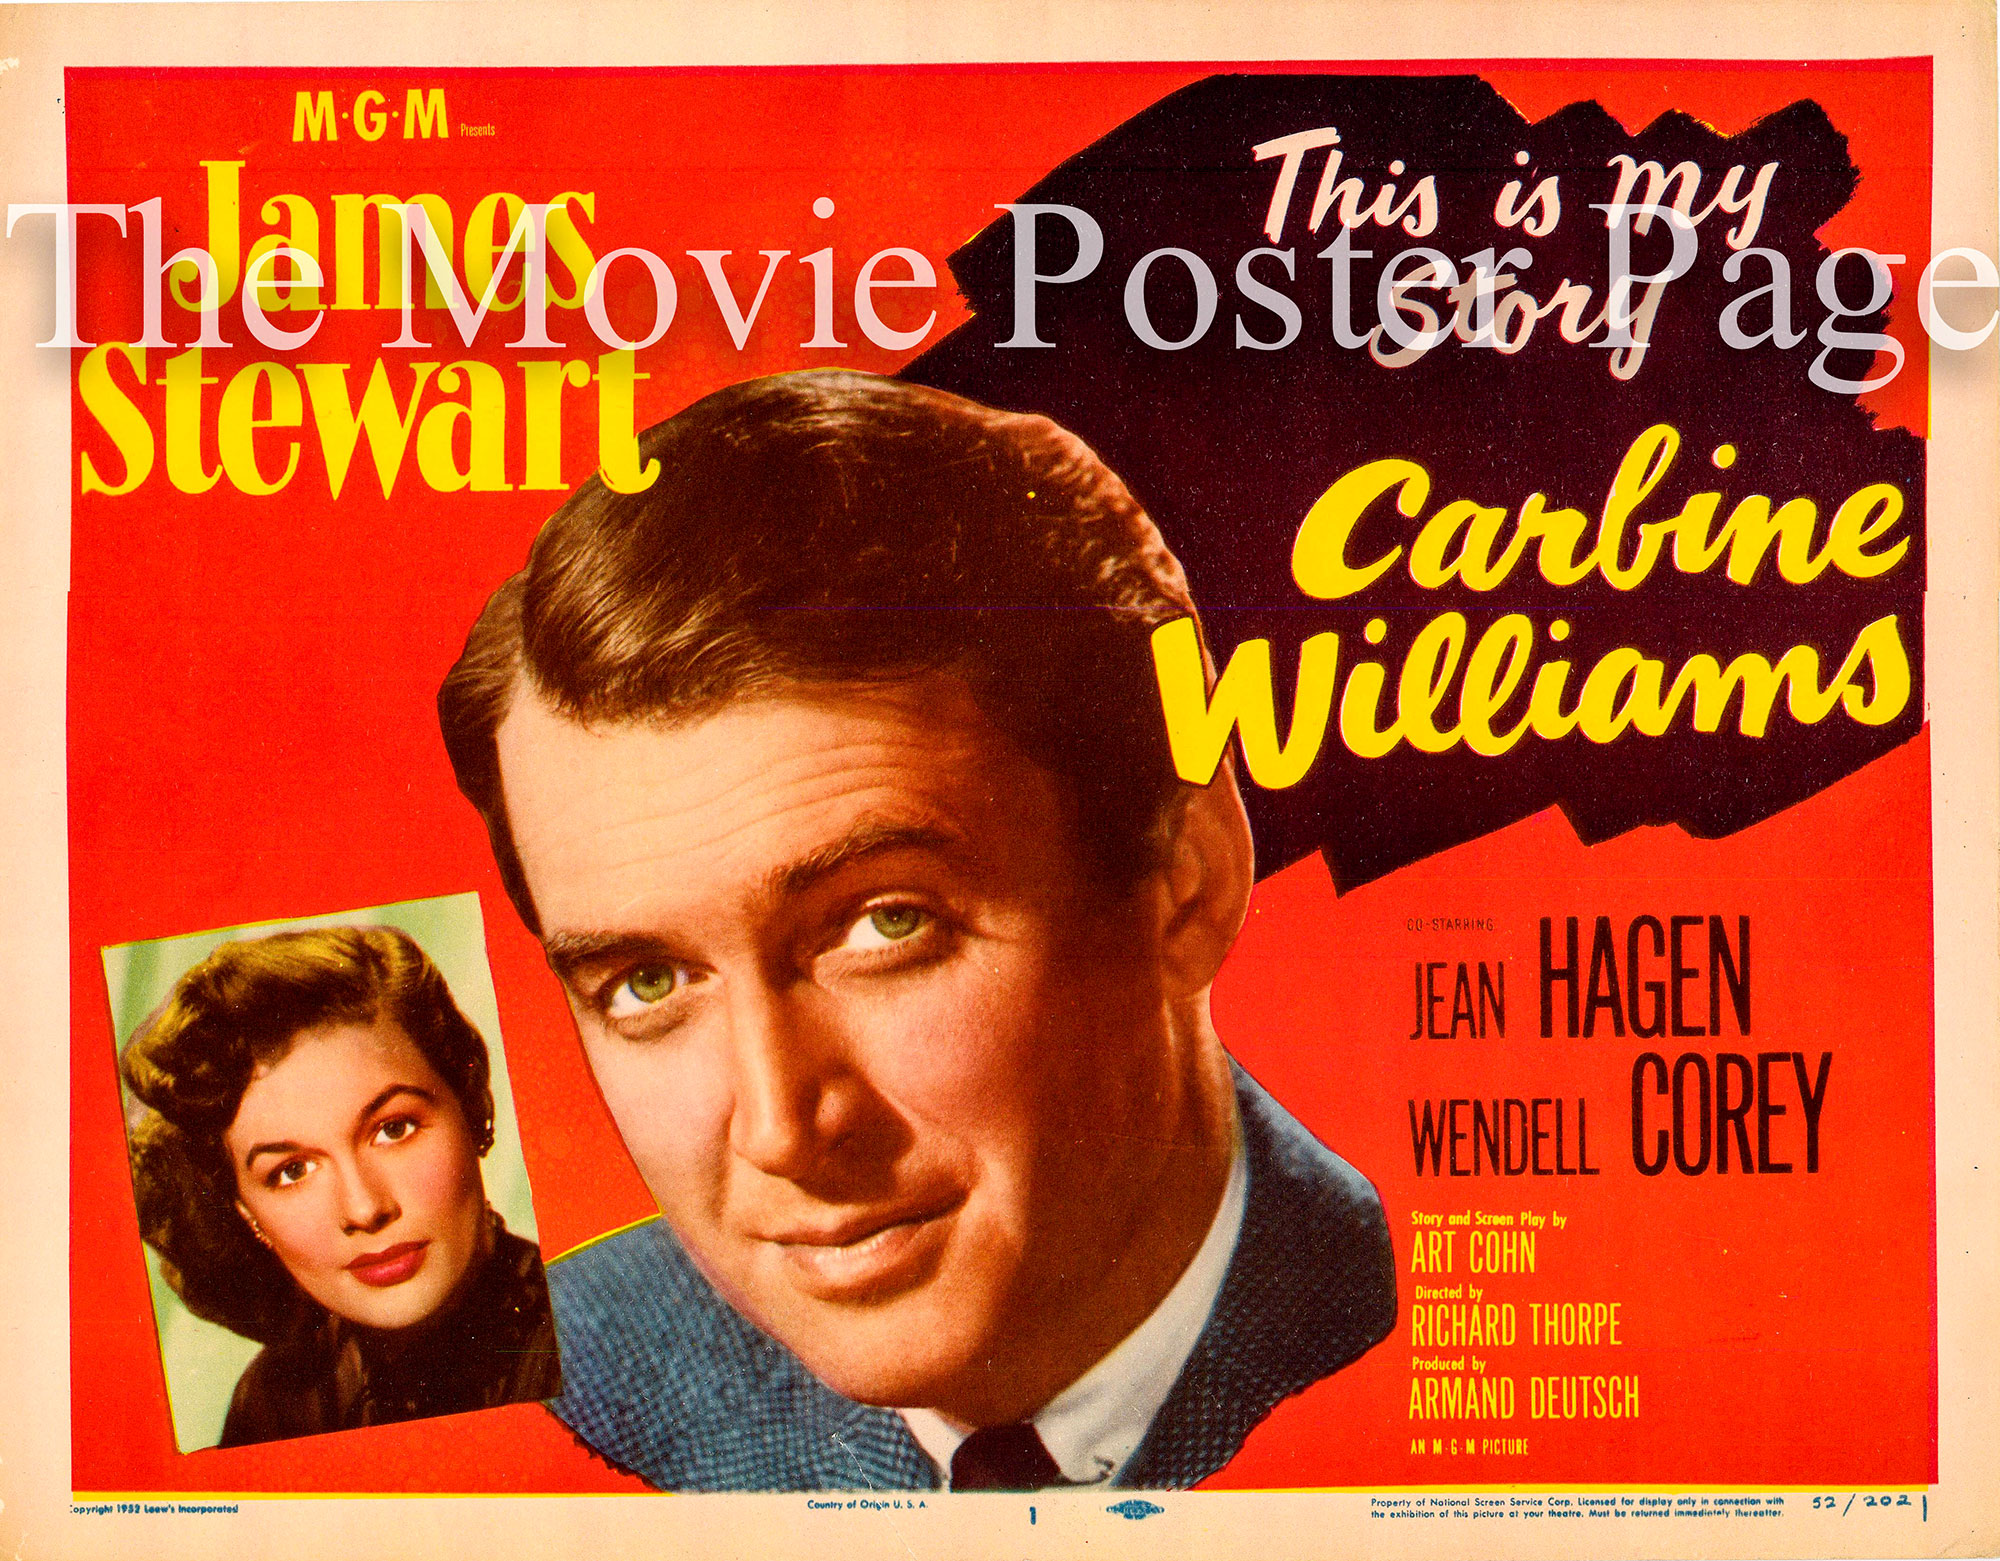 Pictured is a US lobby card for the 1952 Richard Thorpe film Carbine Williams starring James Stewart.